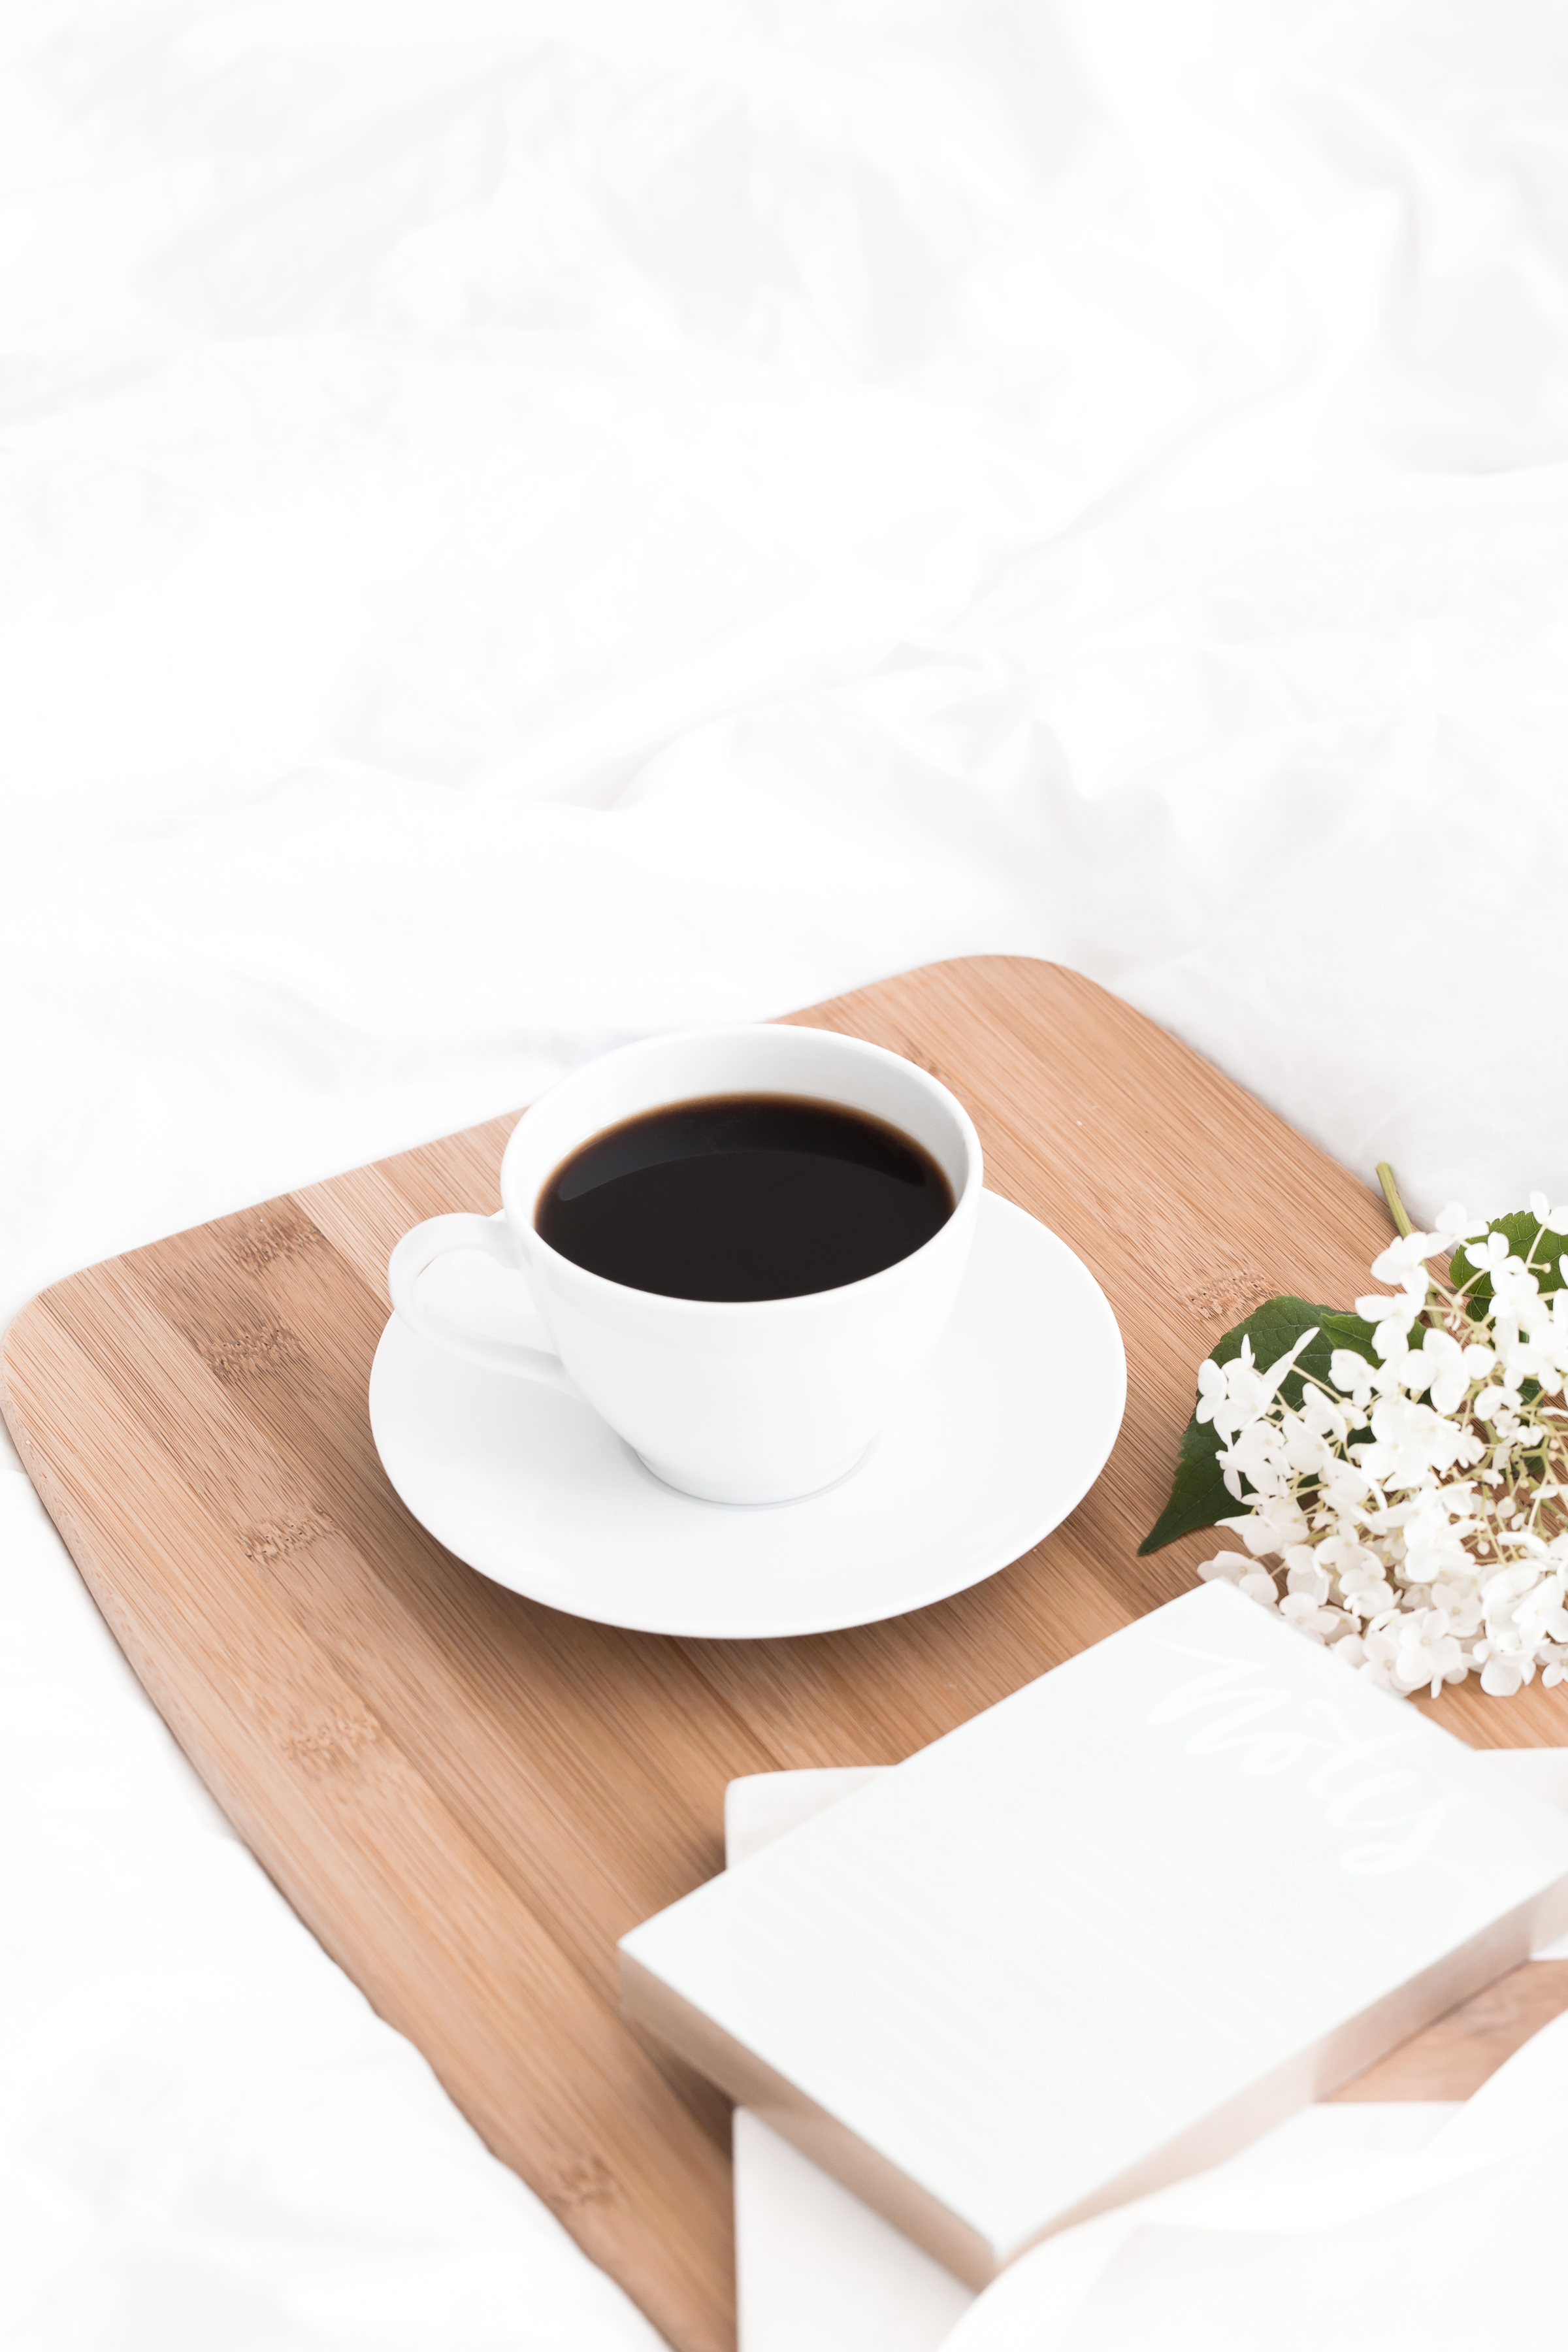 haute-chocolate-styled-stock-photography-breakfast-in-bed-1-final.jpg